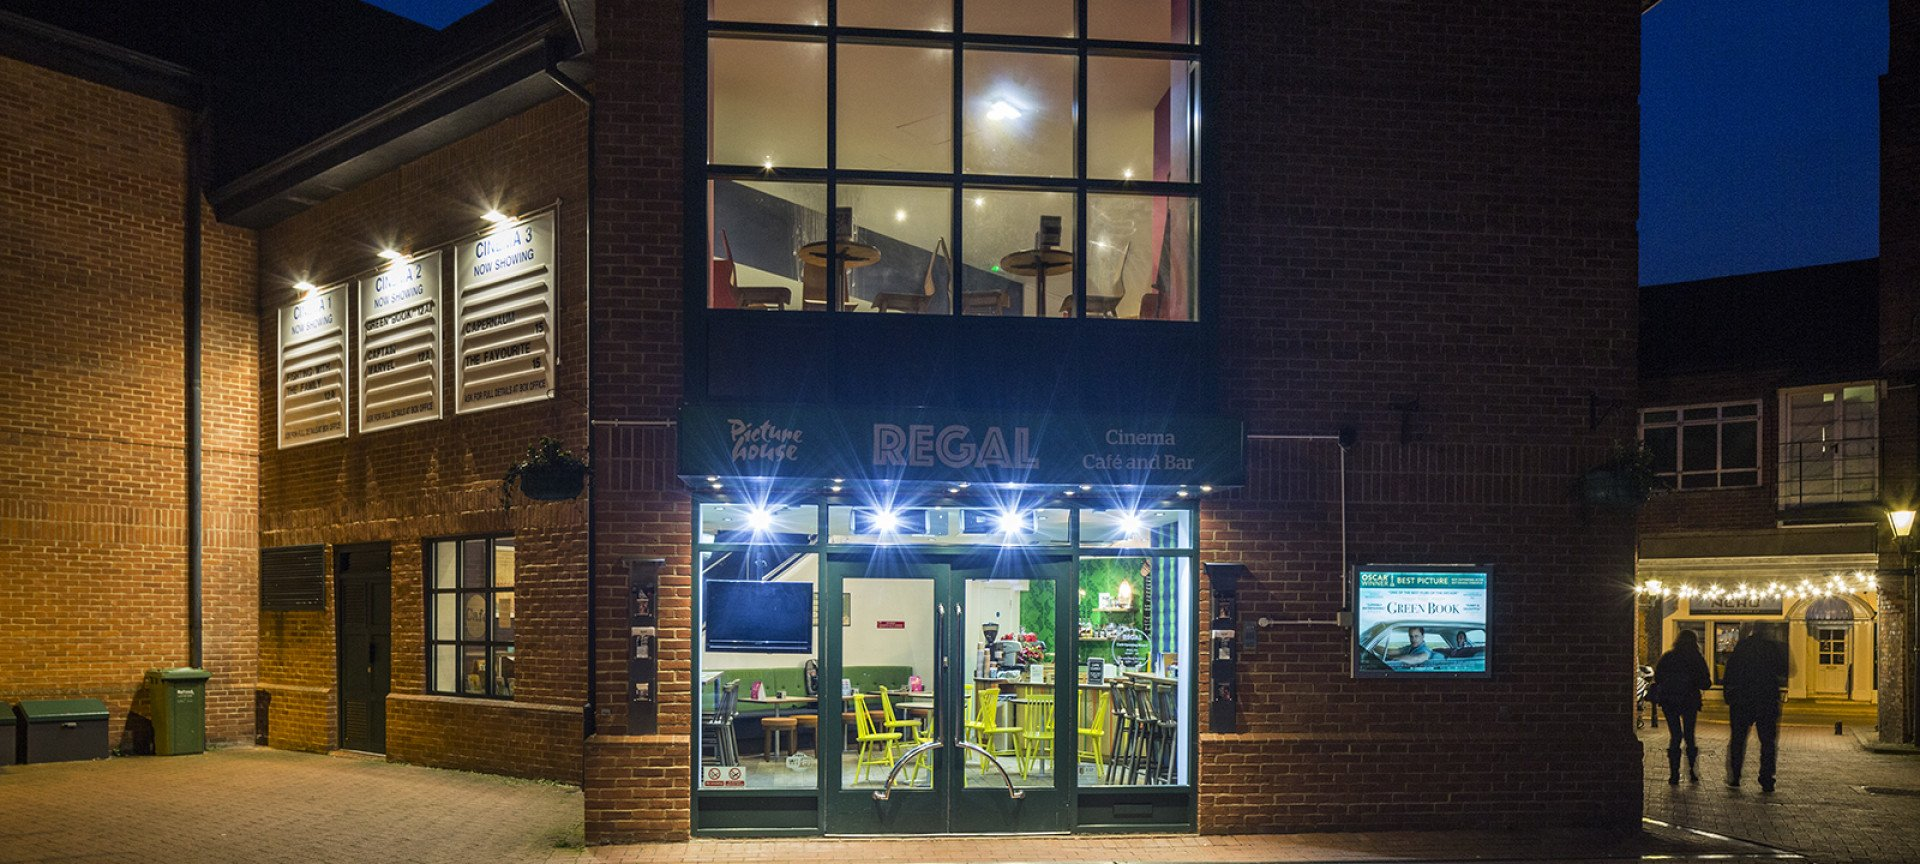 Welcome To <br>Regal, Henley-On-Thames